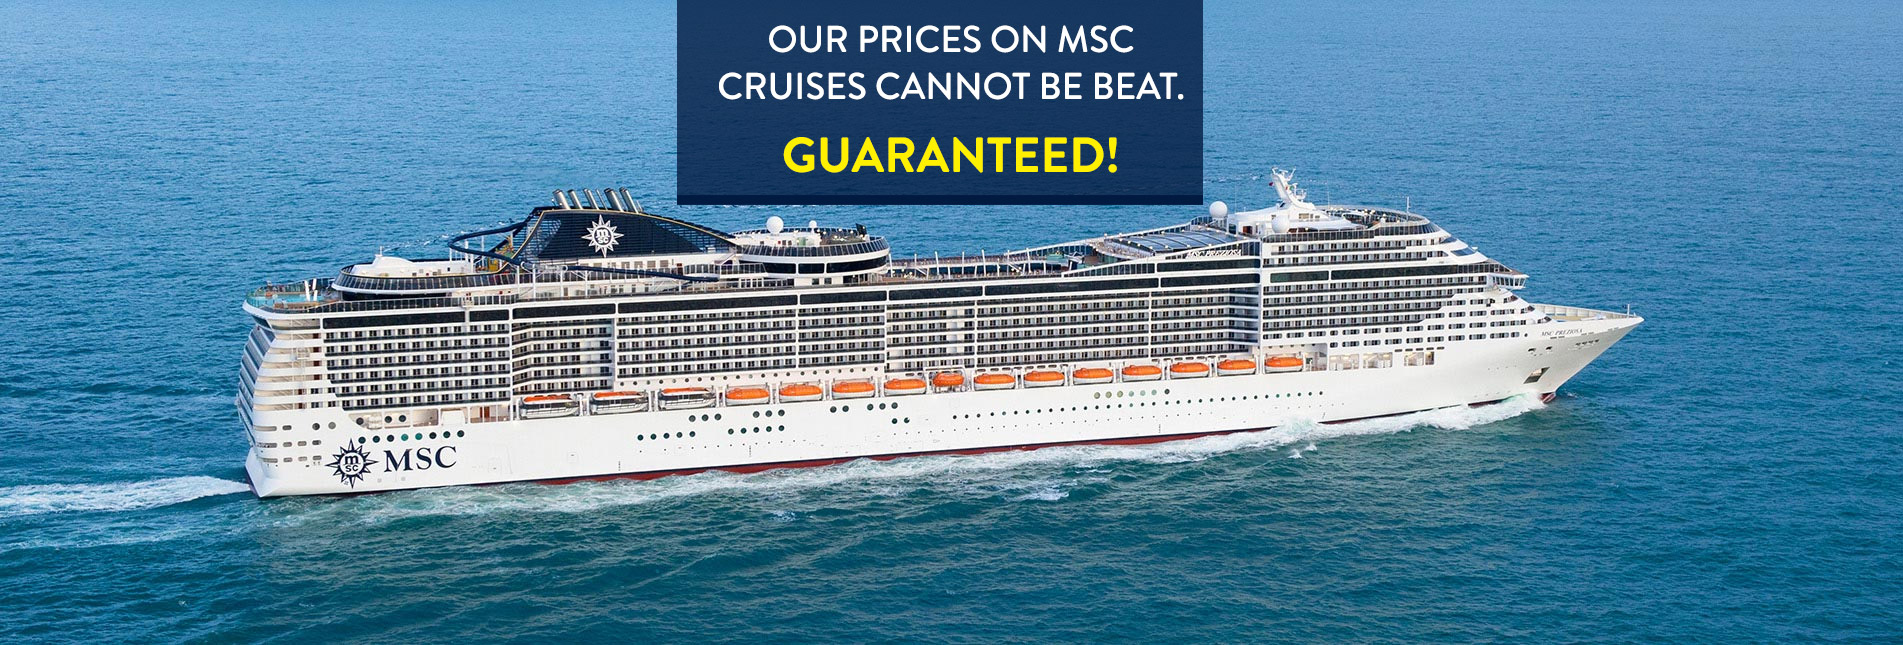 Msc Cruises Msc Cruise Holiday Deals